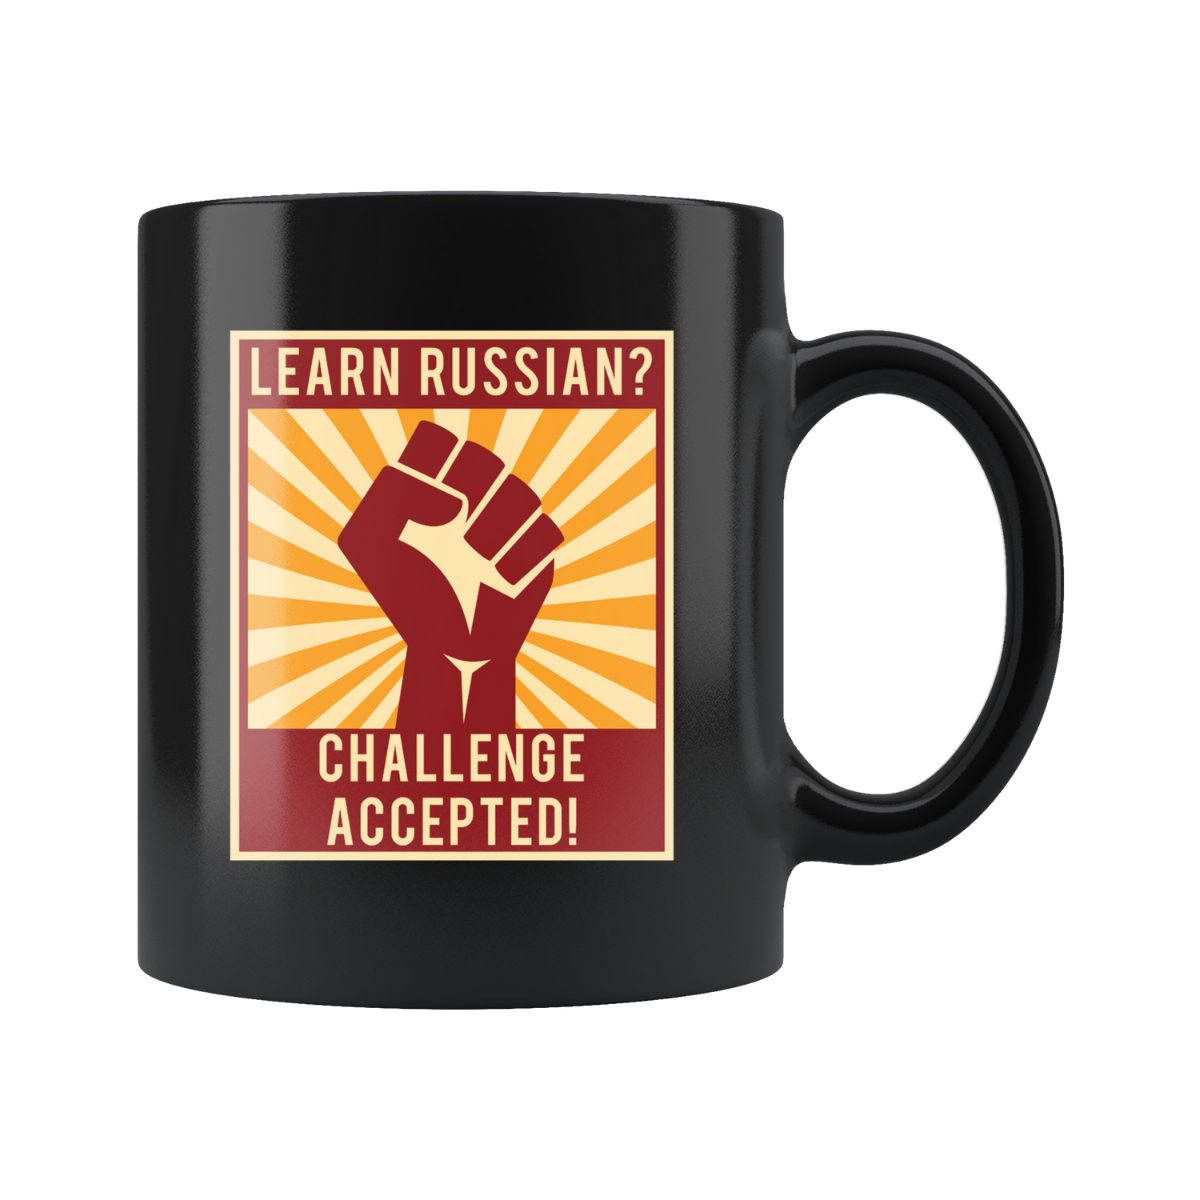 Learn Russian? Challenge Accepted!